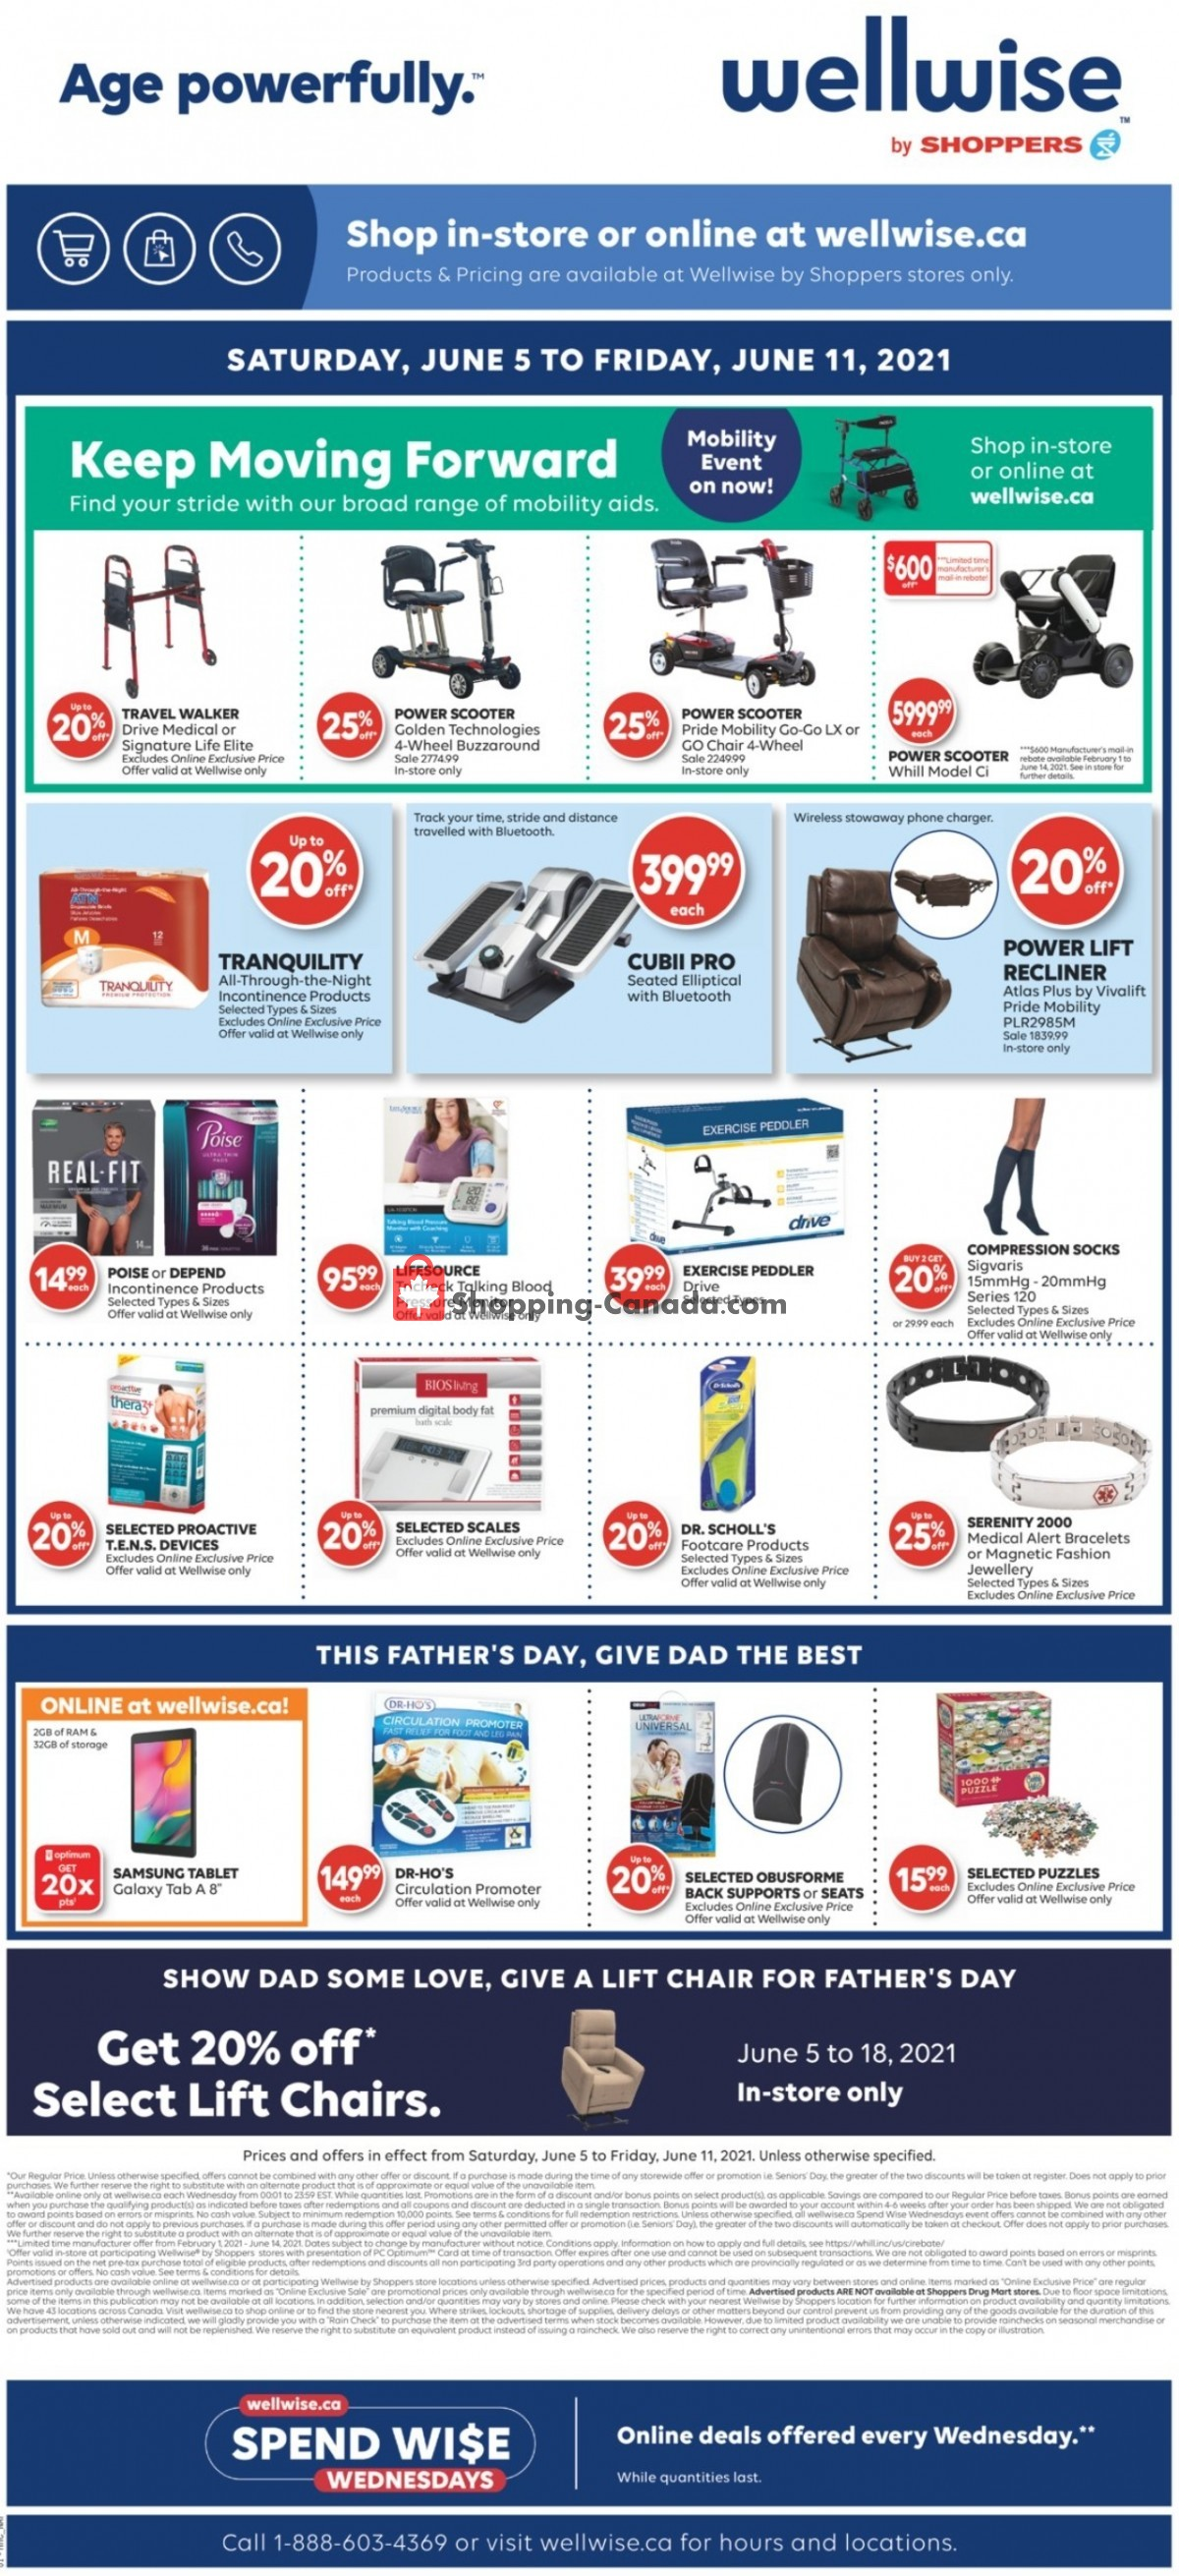 Flyer WellWise by Shoppers Drug Mart Canada - from Saturday June 5, 2021 to Friday June 11, 2021